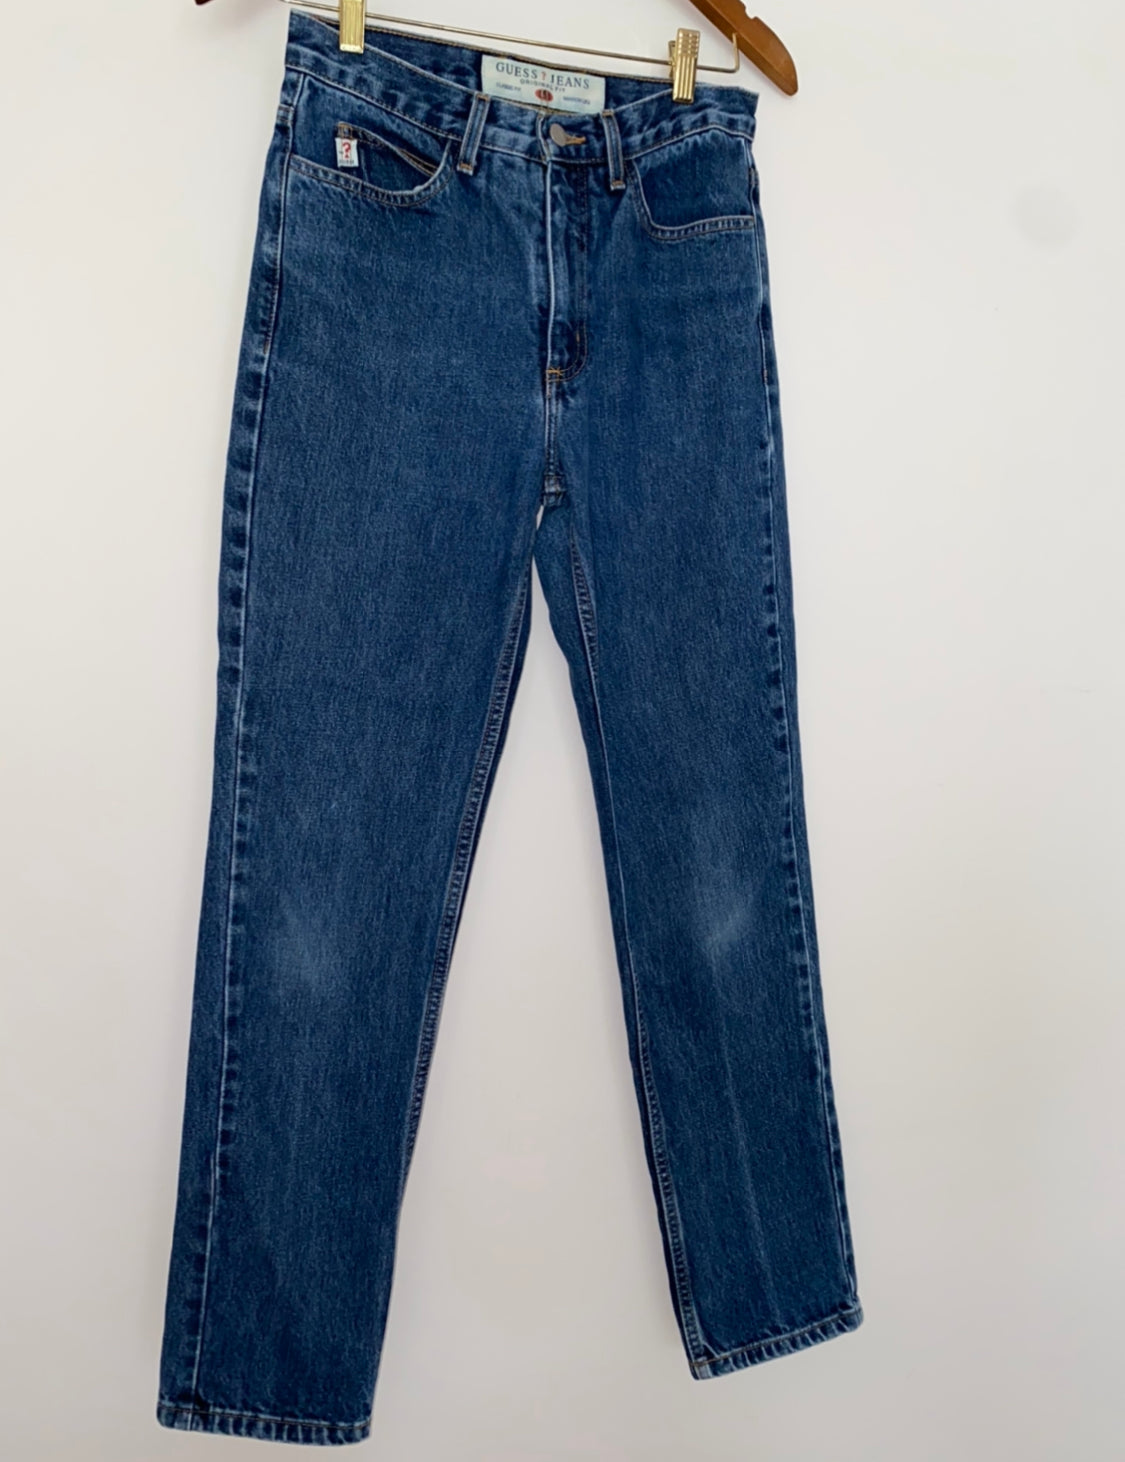 Vintage Guess Dark Denim